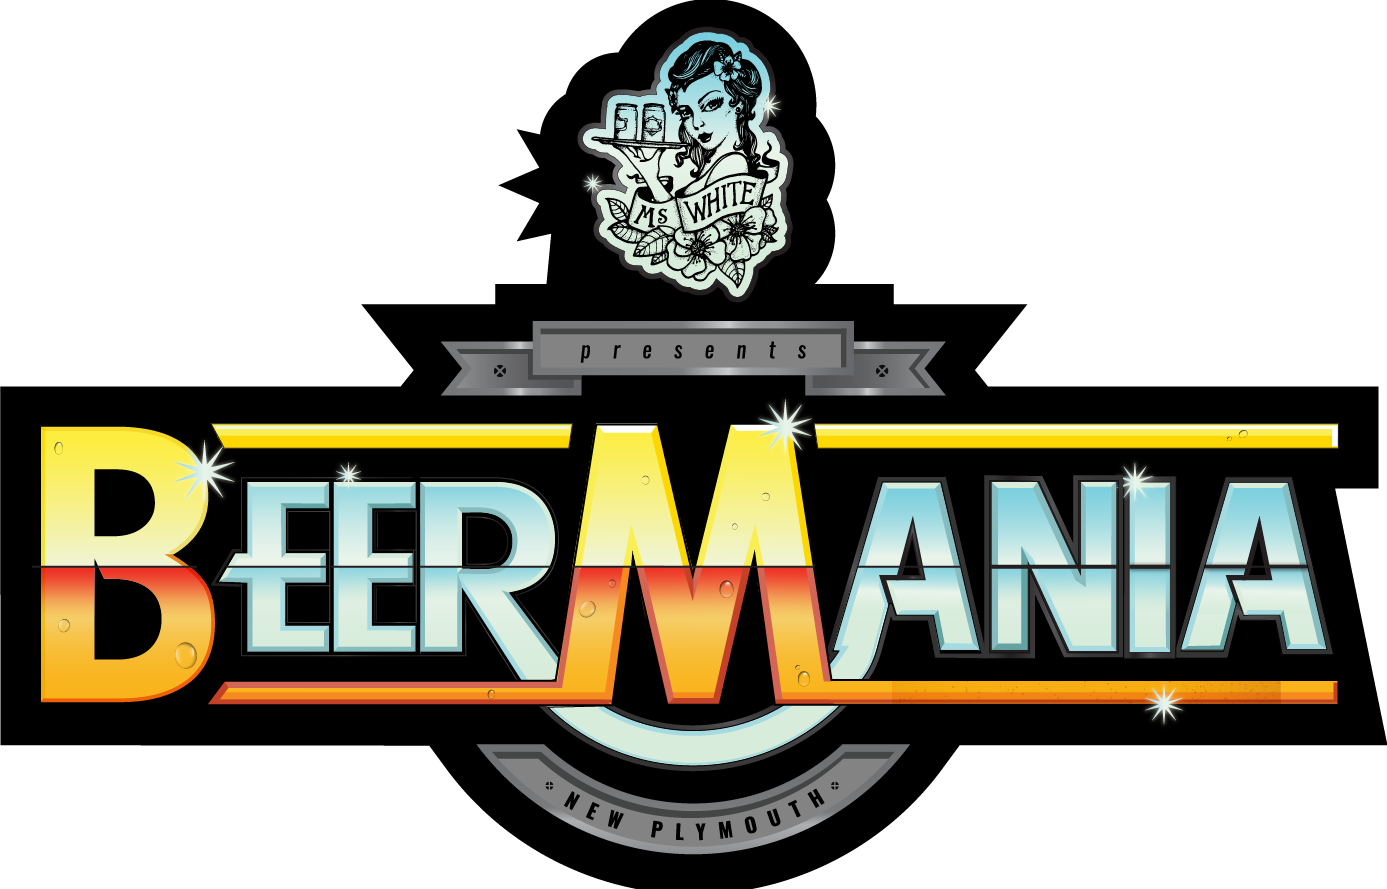 beermania, new plymouth, ms white